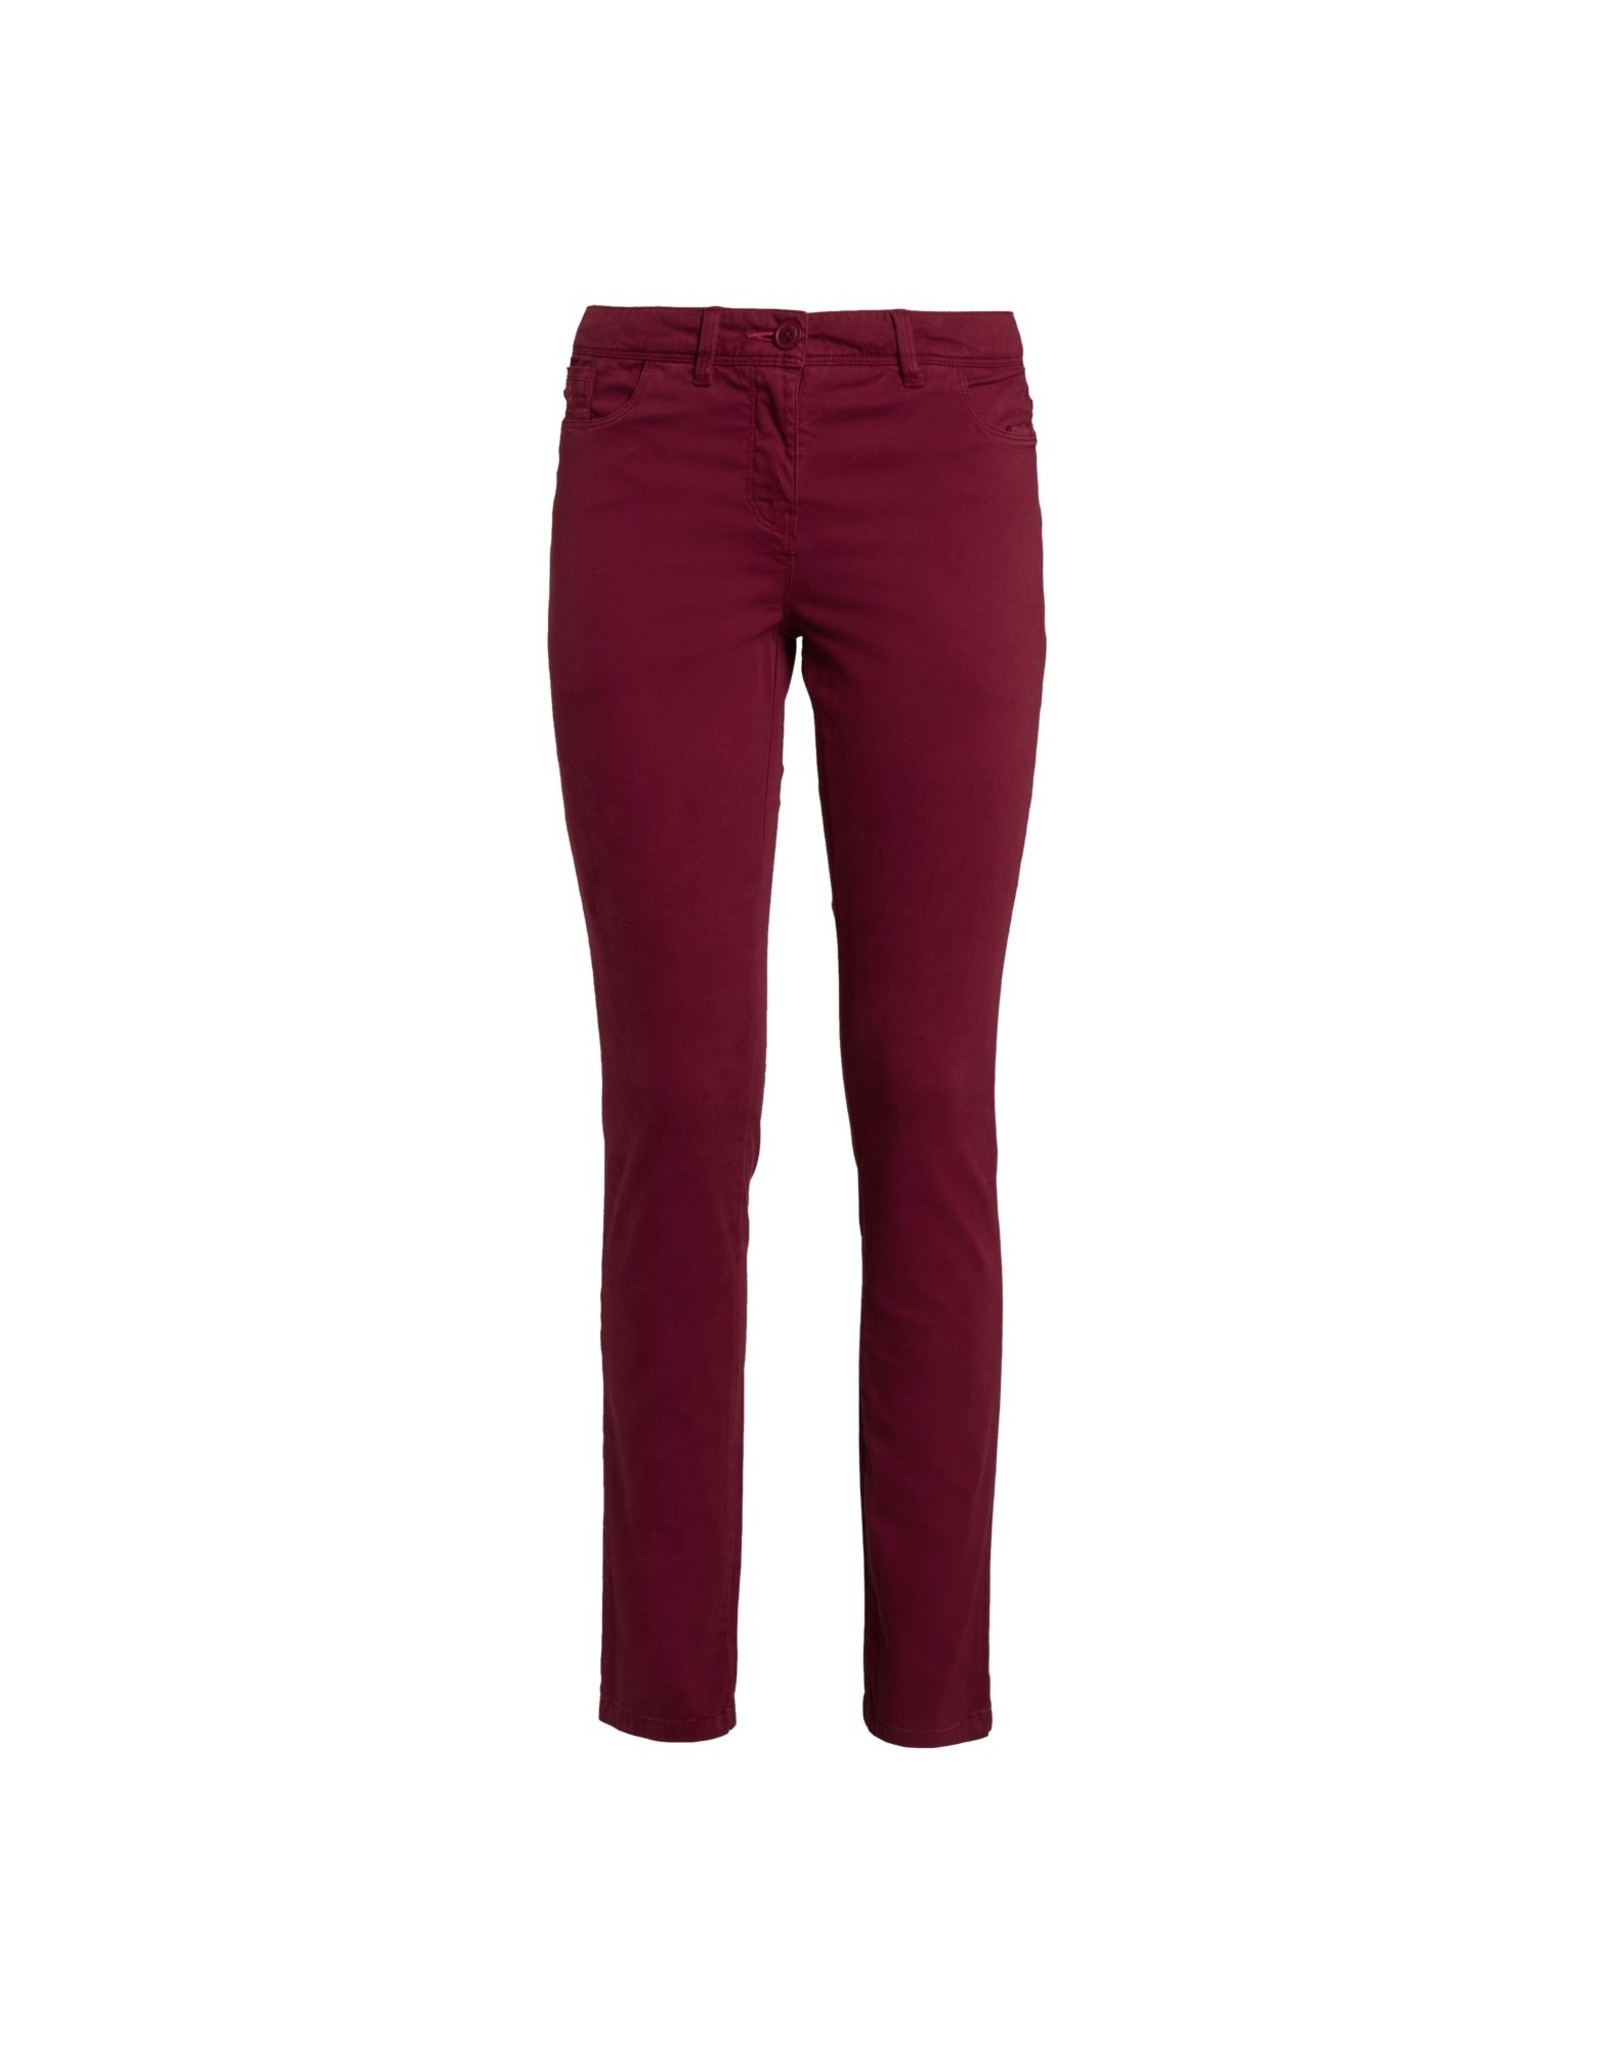 Slam Trousers B38 - Biking Red ( E06 )